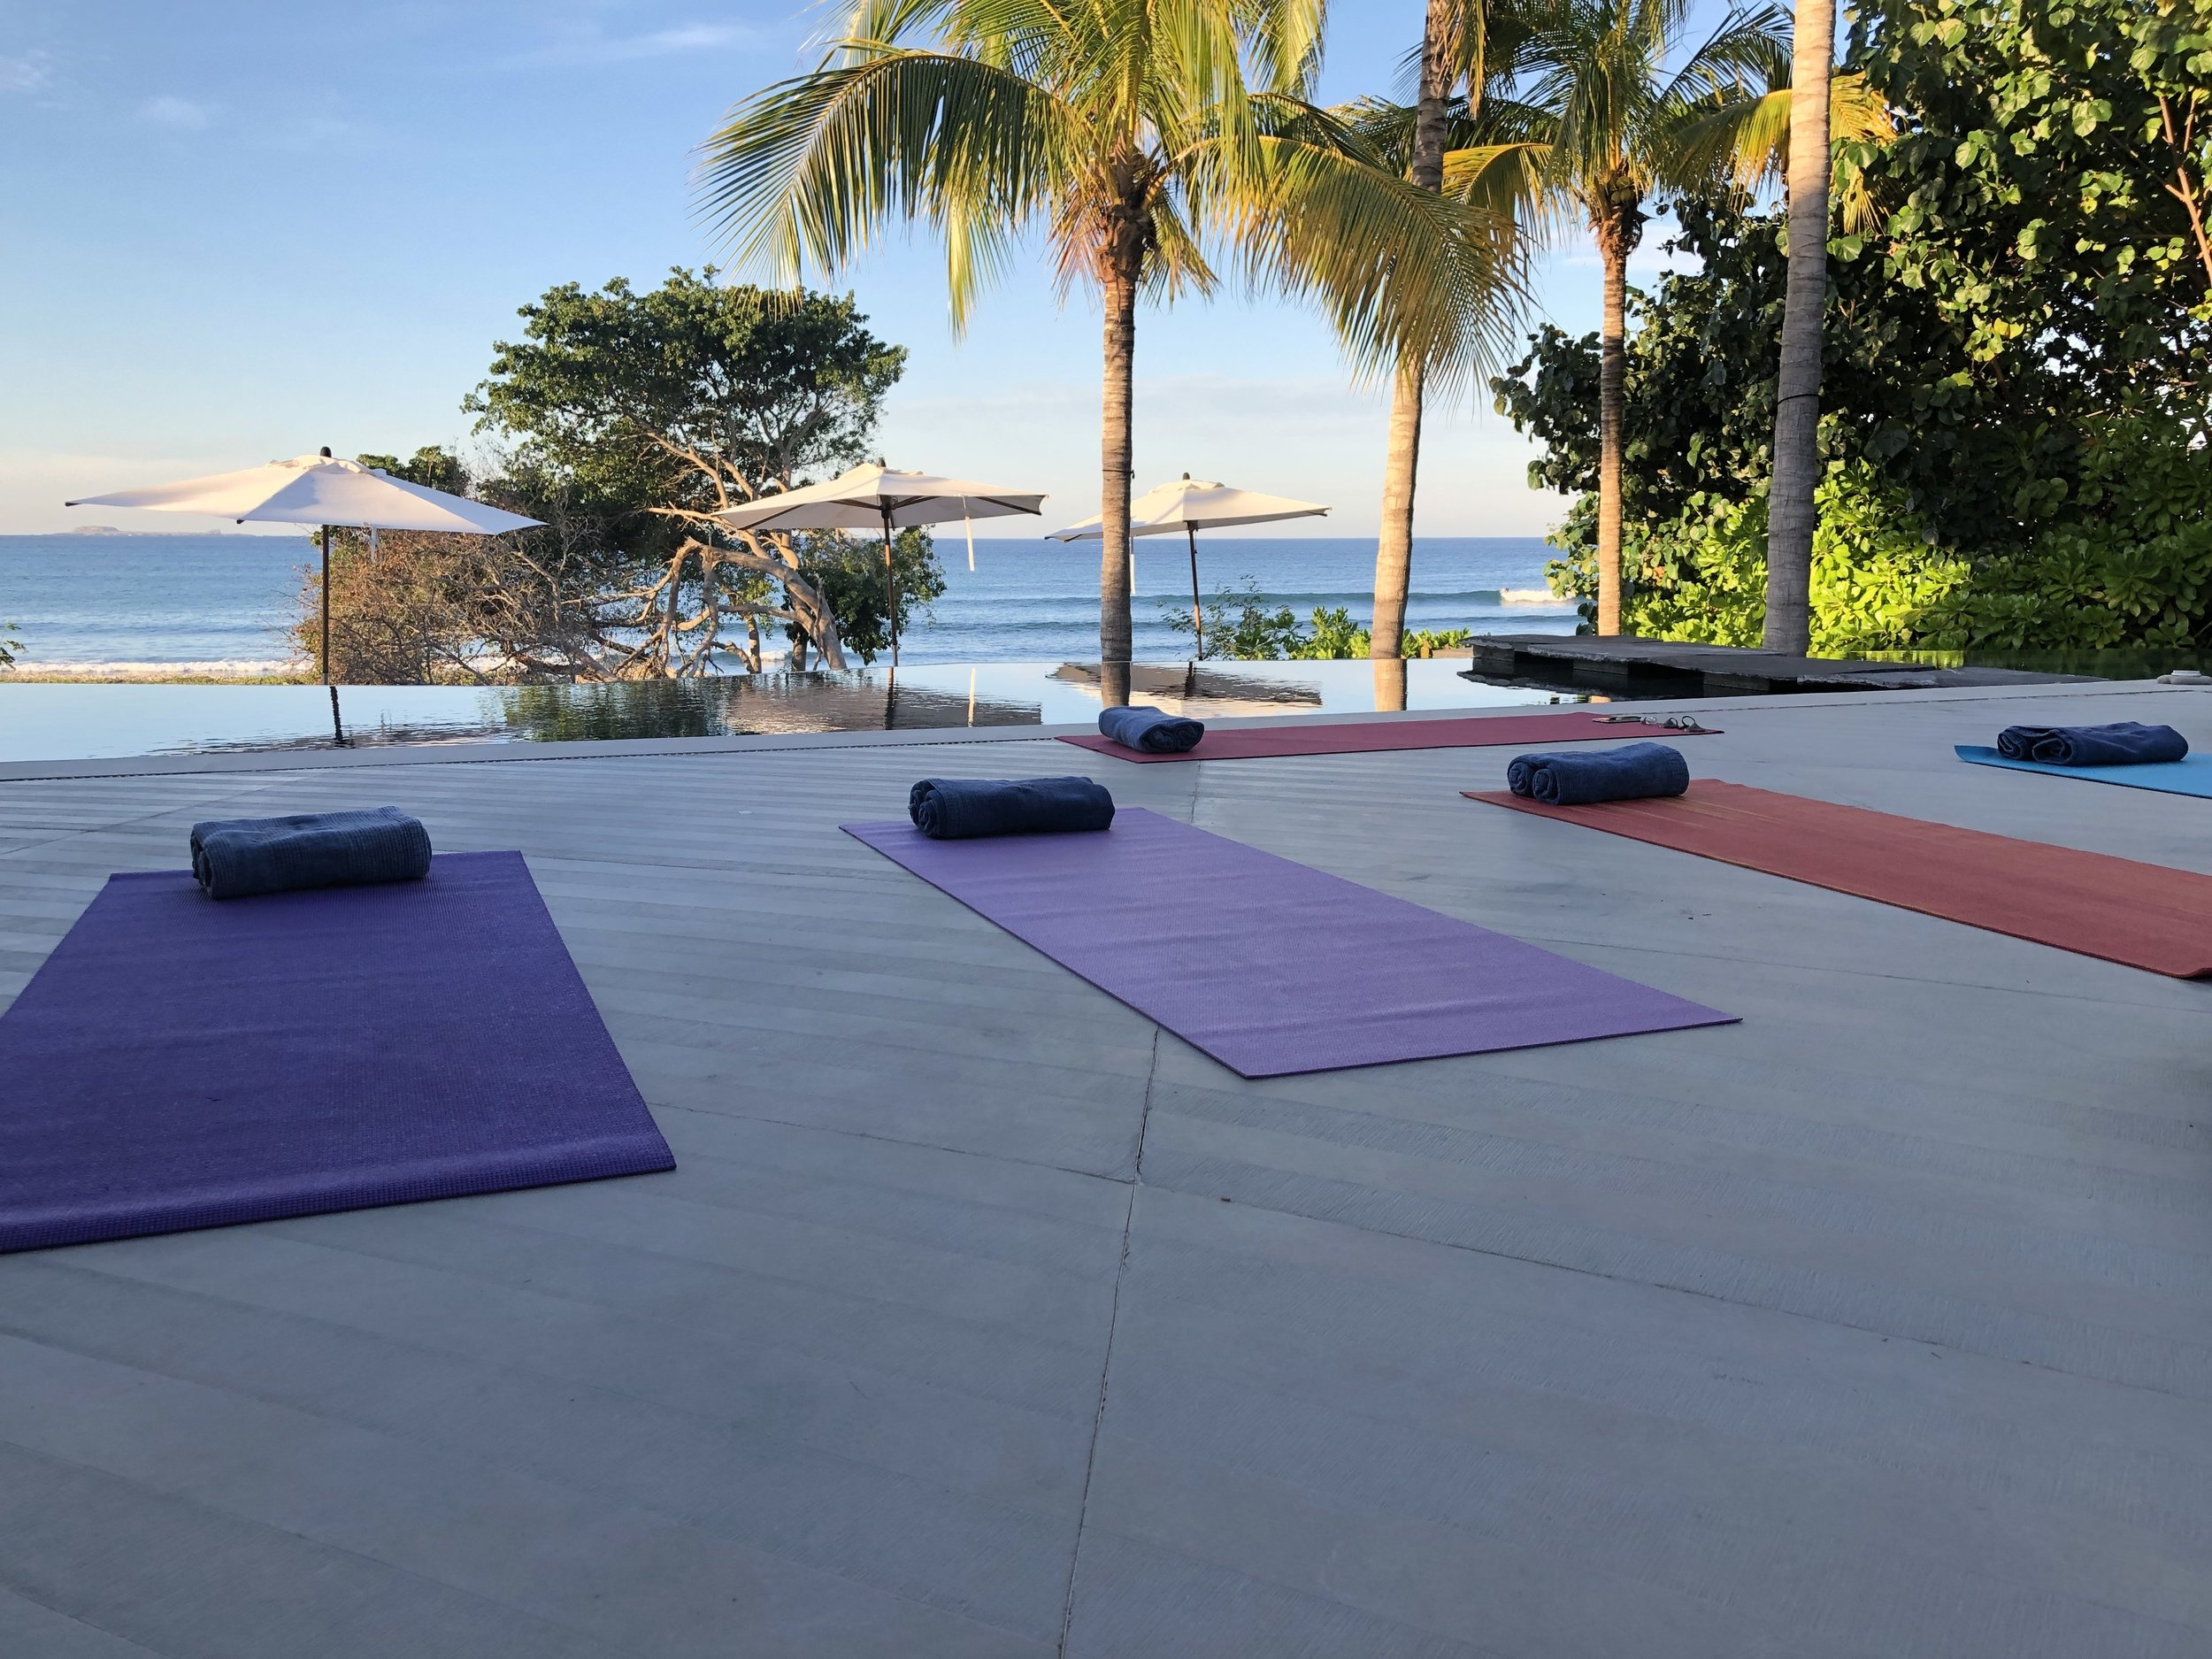 Private yoga lesson by the pool